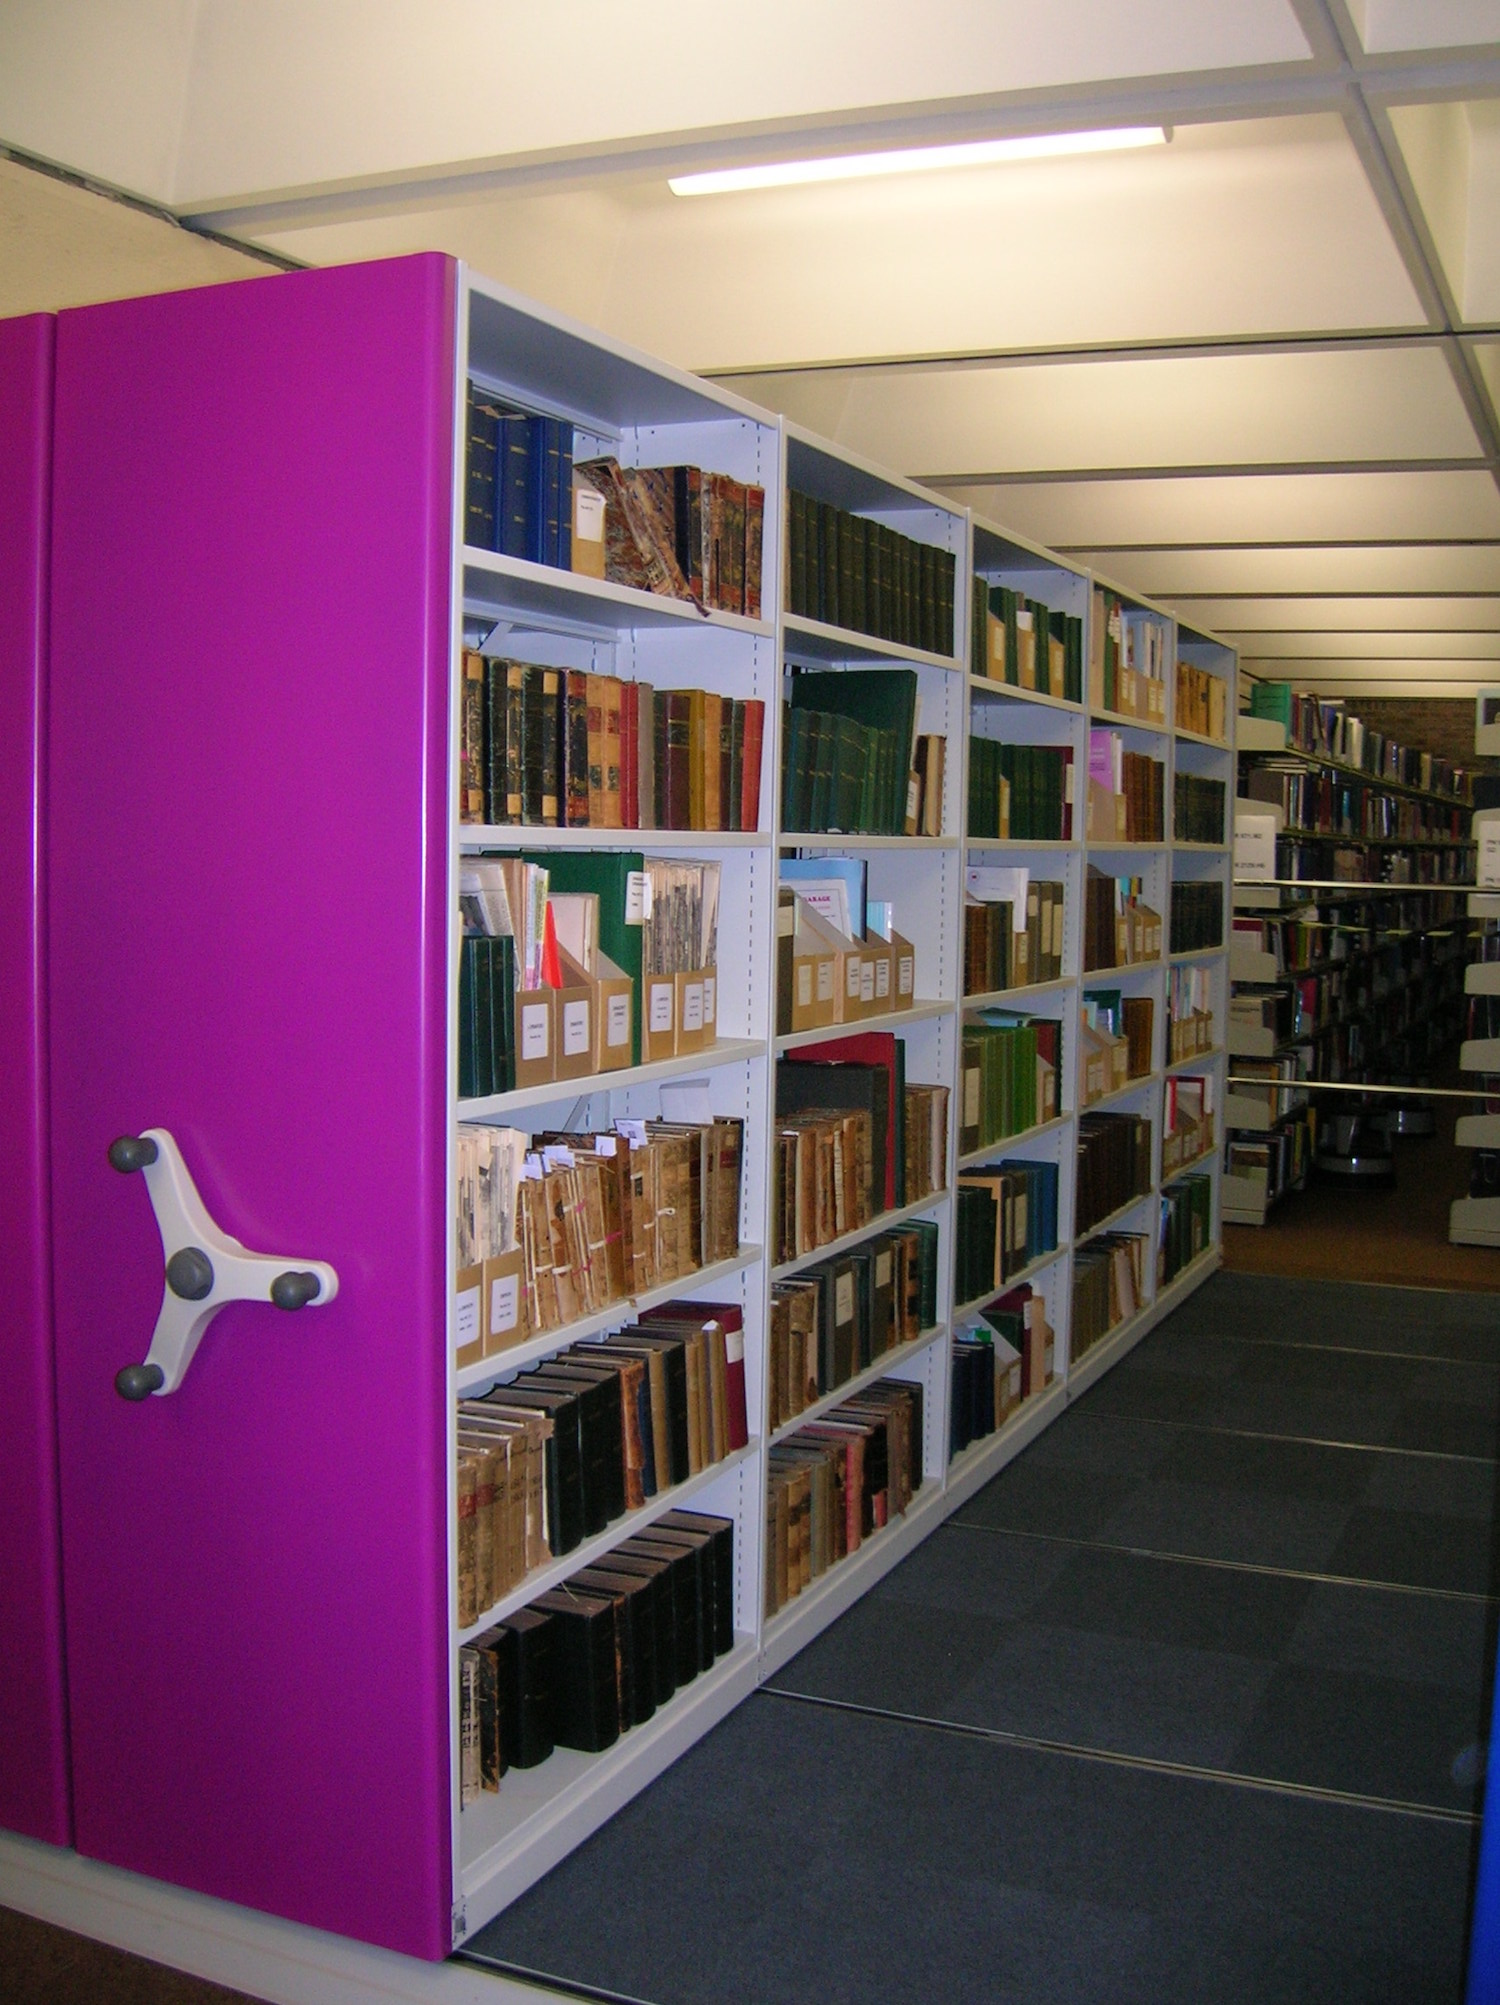 Library Shelving And Furniture12.JPG